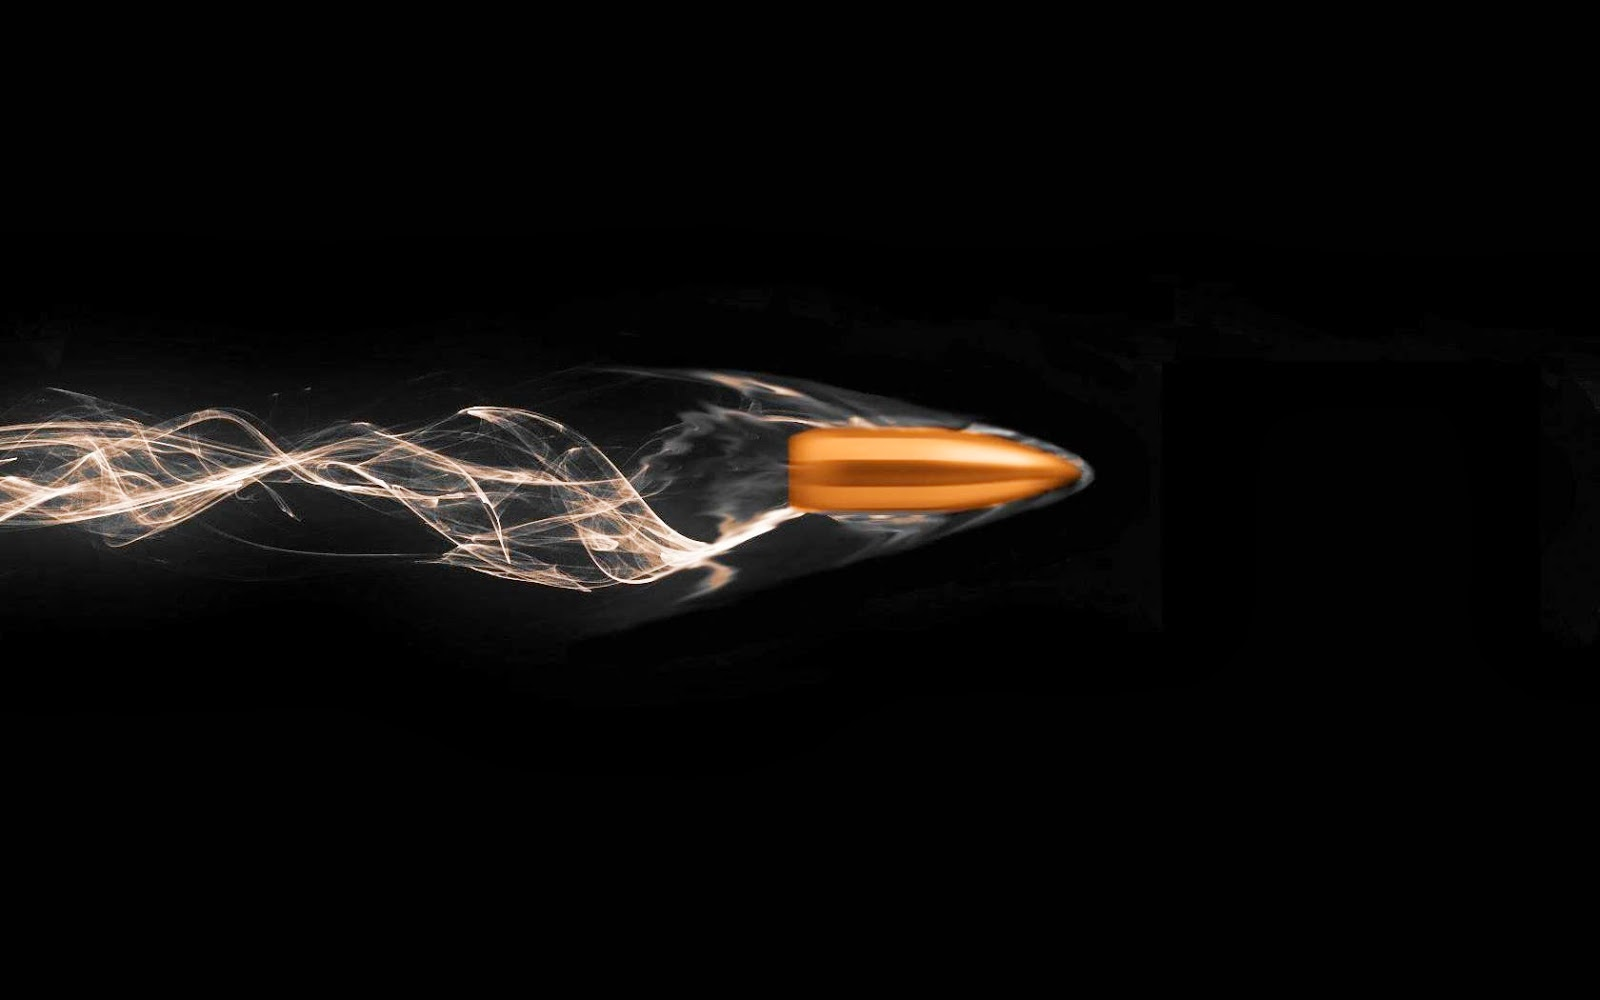 bullet 3d wallpapers hd wallpapers blog